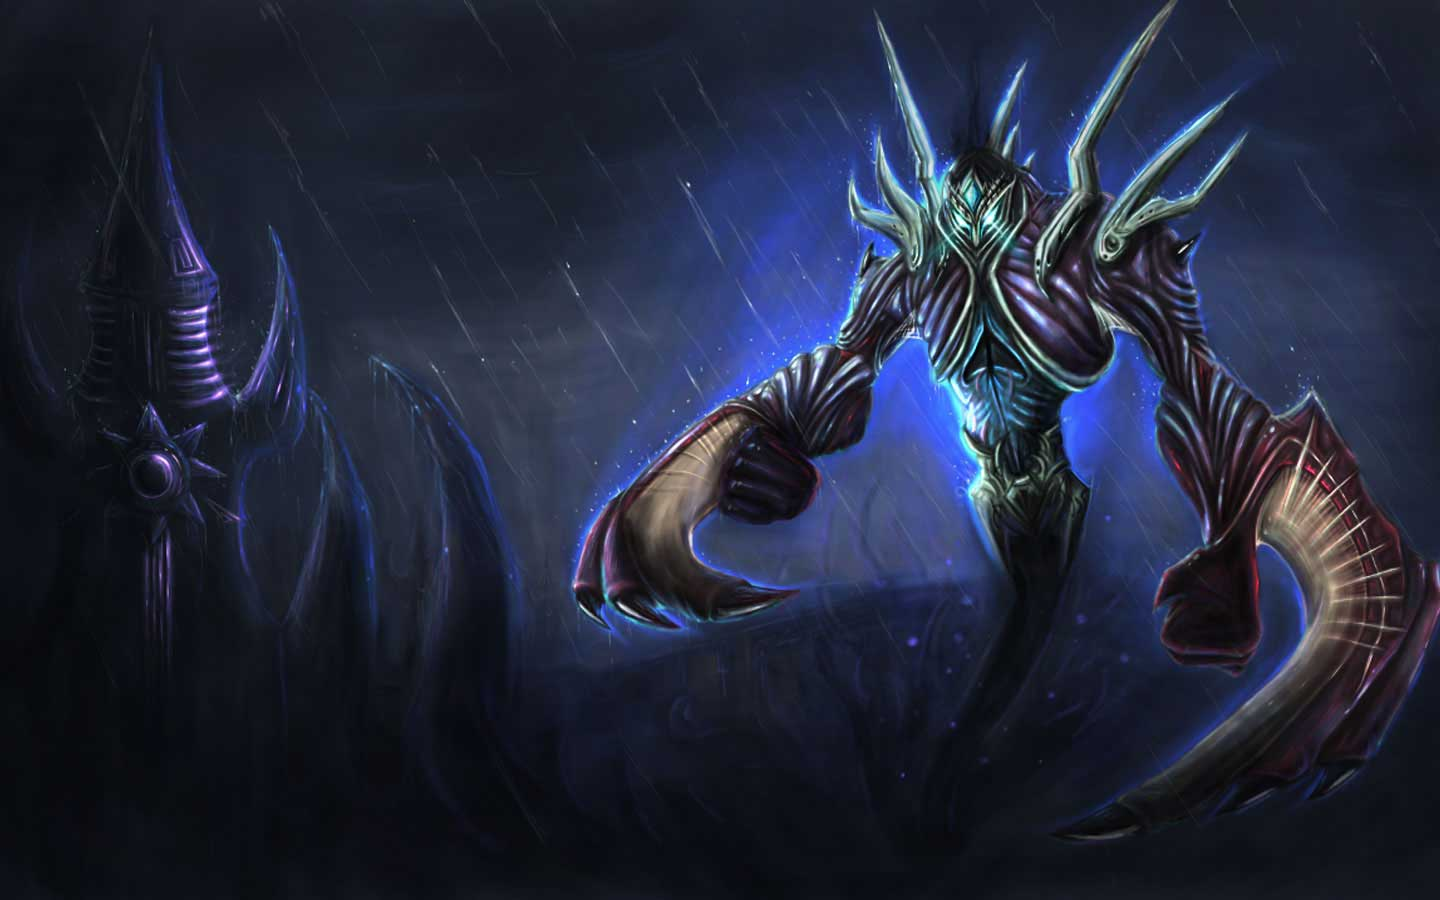 http://4.bp.blogspot.com/-VMH70_Eqa7k/UNJ7Zb71uhI/AAAAAAAAEyk/k5MMv6W7-b8/s1600/void_nocturne_league_of_legends_wallpaper.jpg